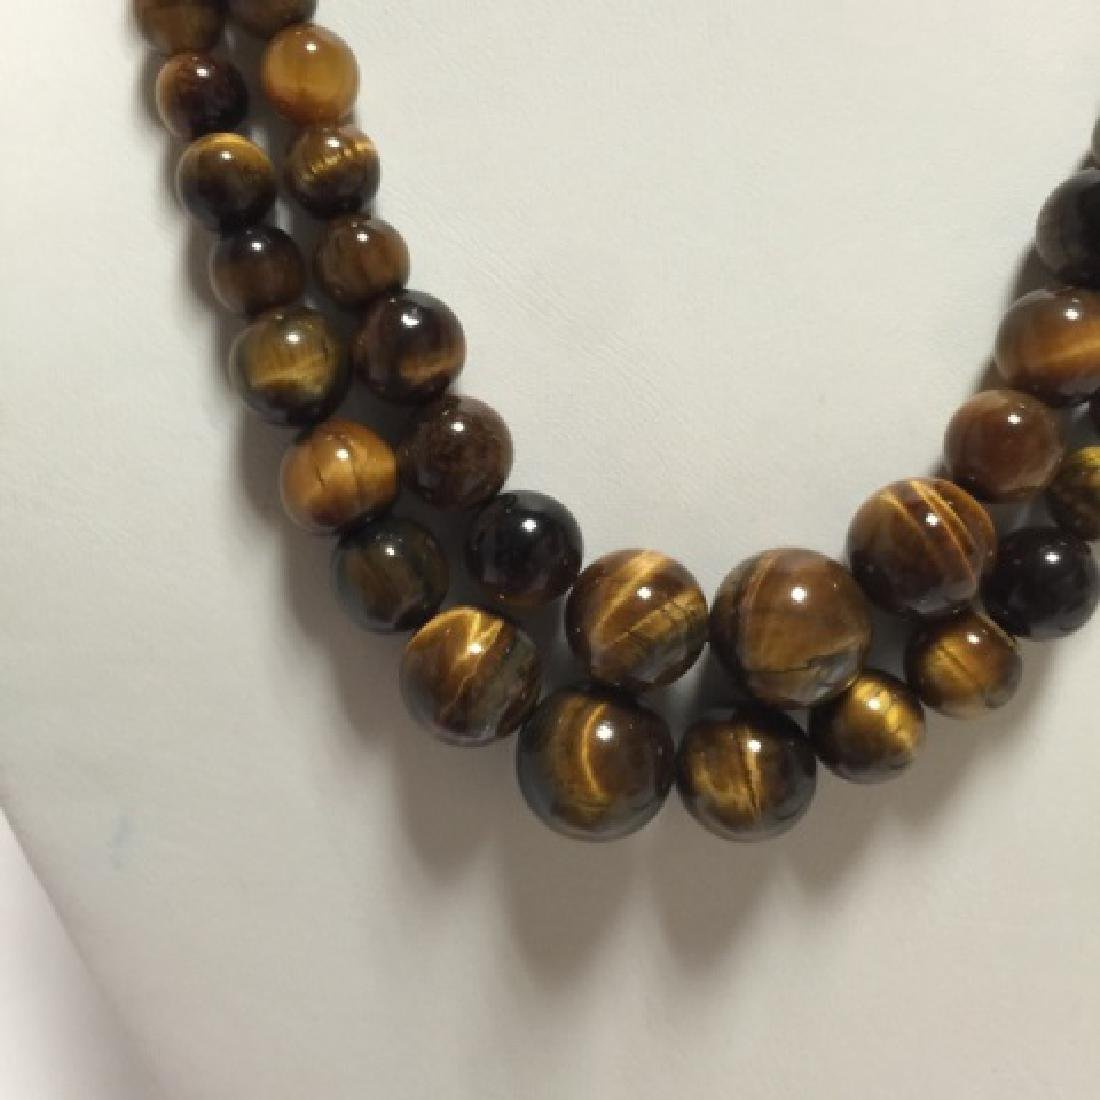 Pair of Carved Tiger's Eye Round Bead Necklaces - 3